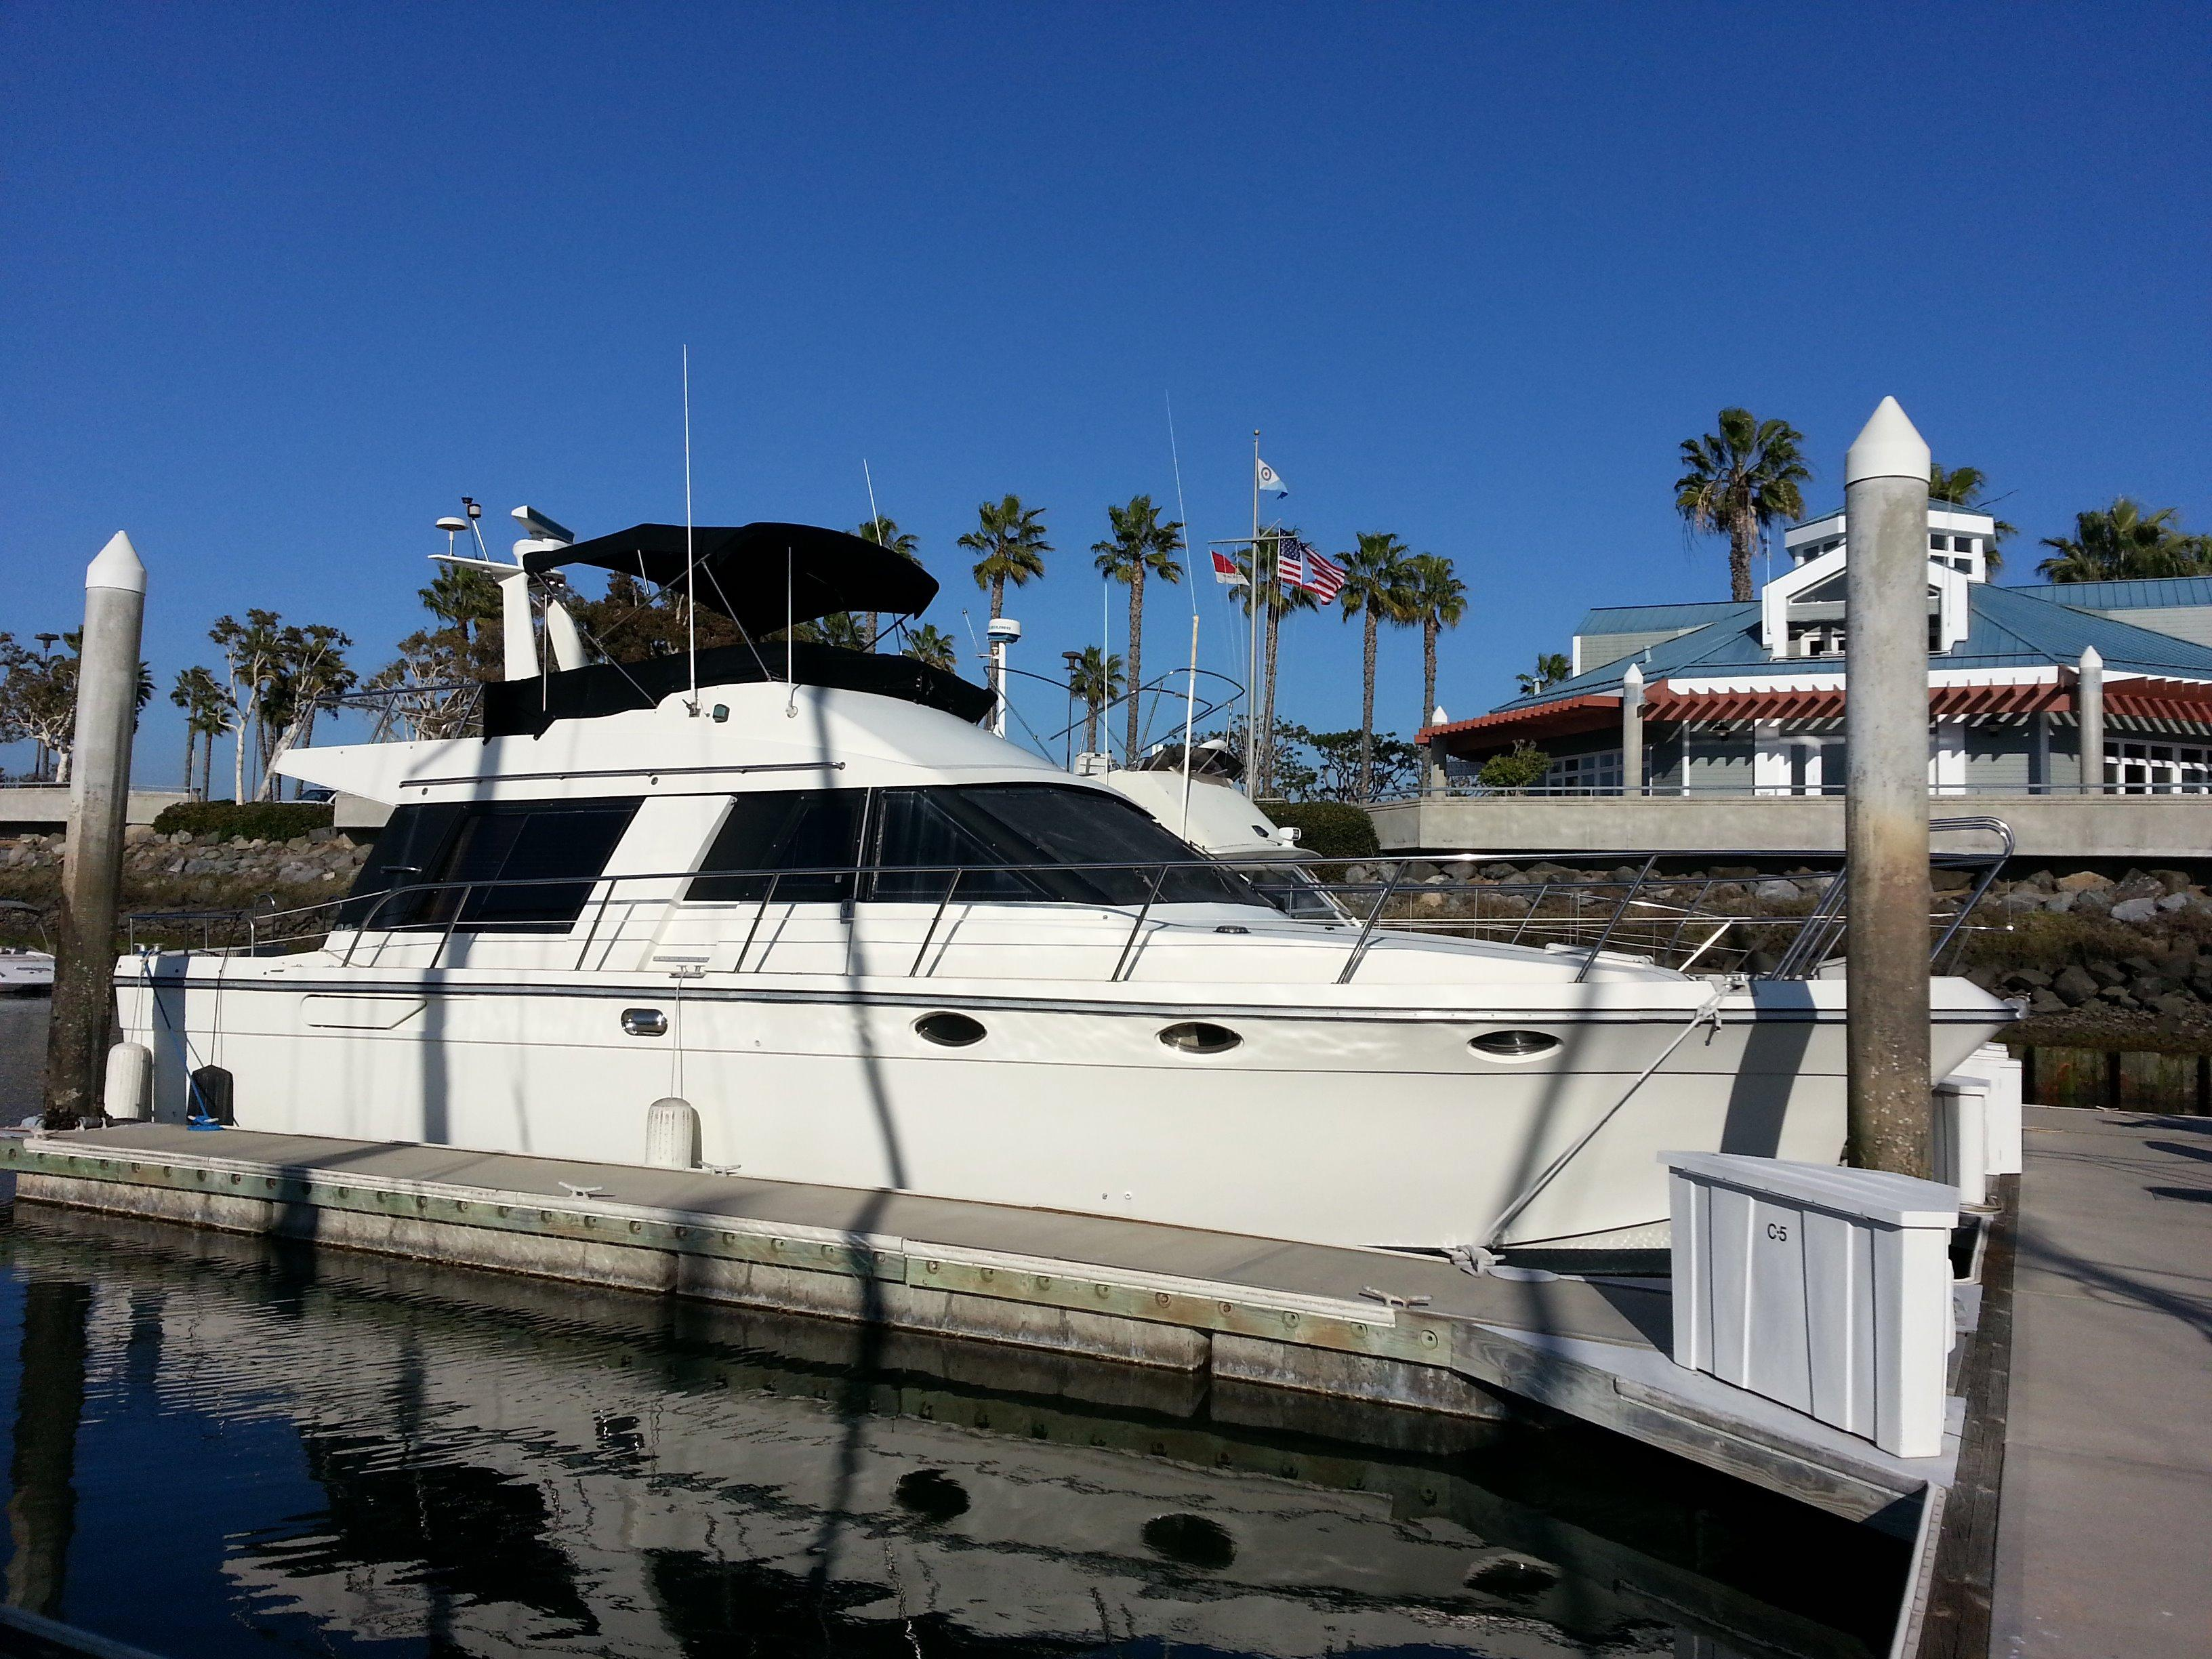 Boat Listings In Sandiego Ca